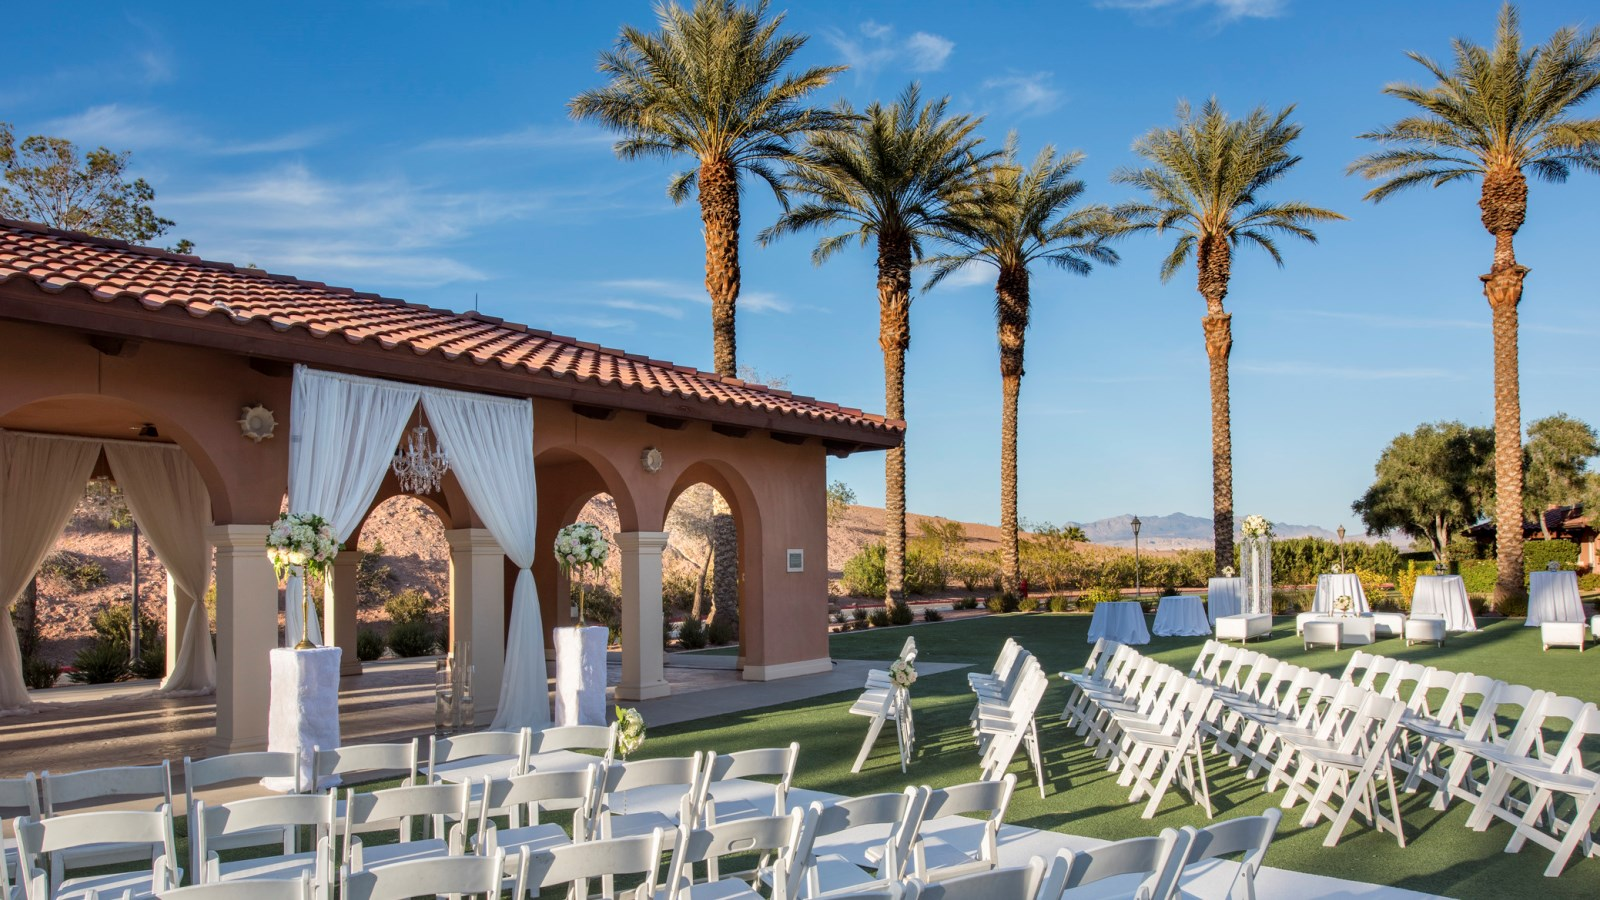 Lake las vegas weddings the westin lake las vegas resort spa lake las vegas wedding venues la menzah lawn junglespirit Images